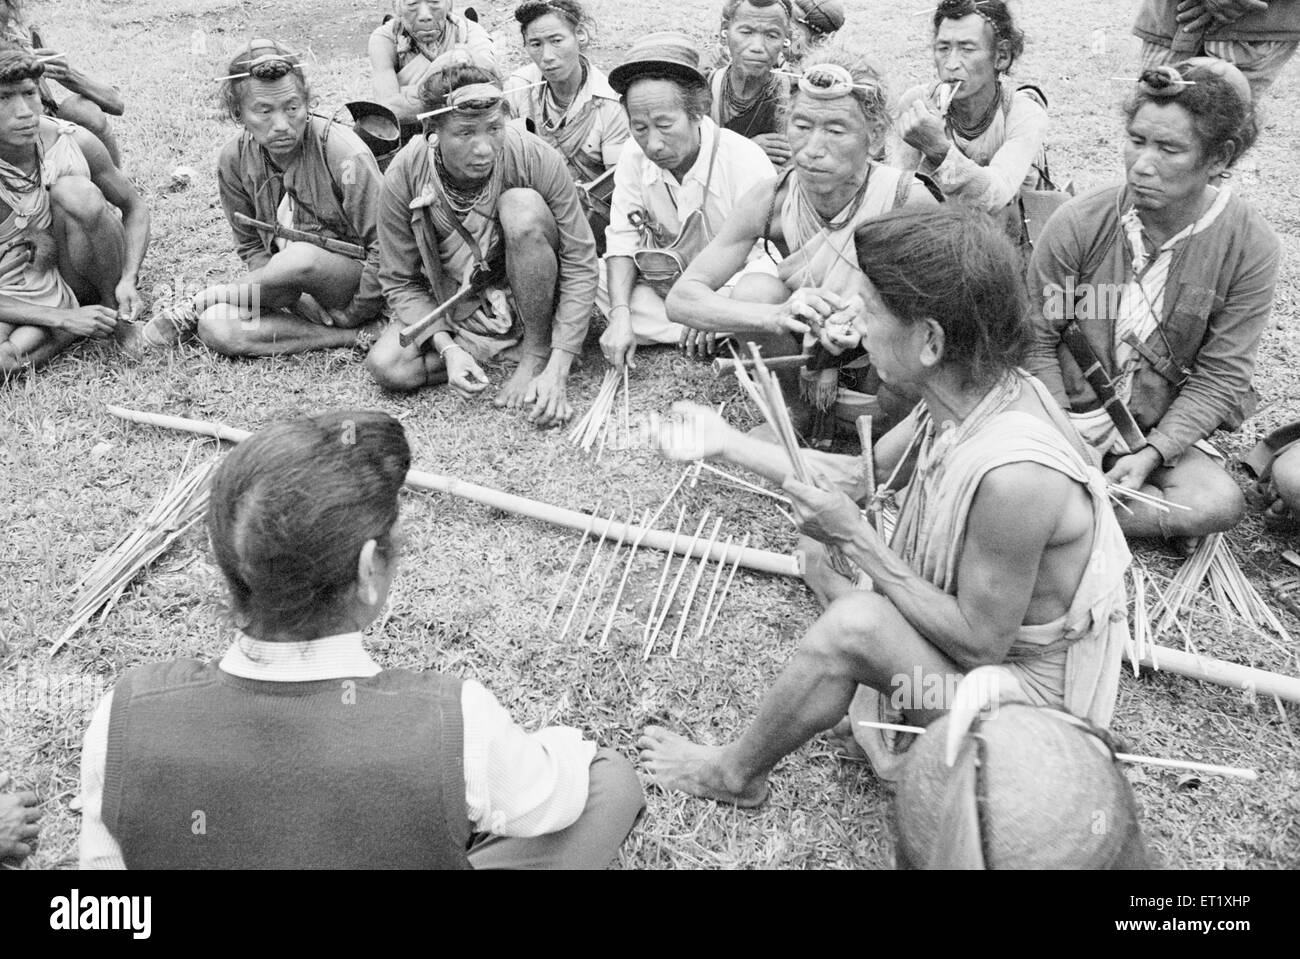 Bagni tribes men settling dispute between two group using small bamboo sticks ; Arunachal Pradesh ; India NO MR - Stock Image